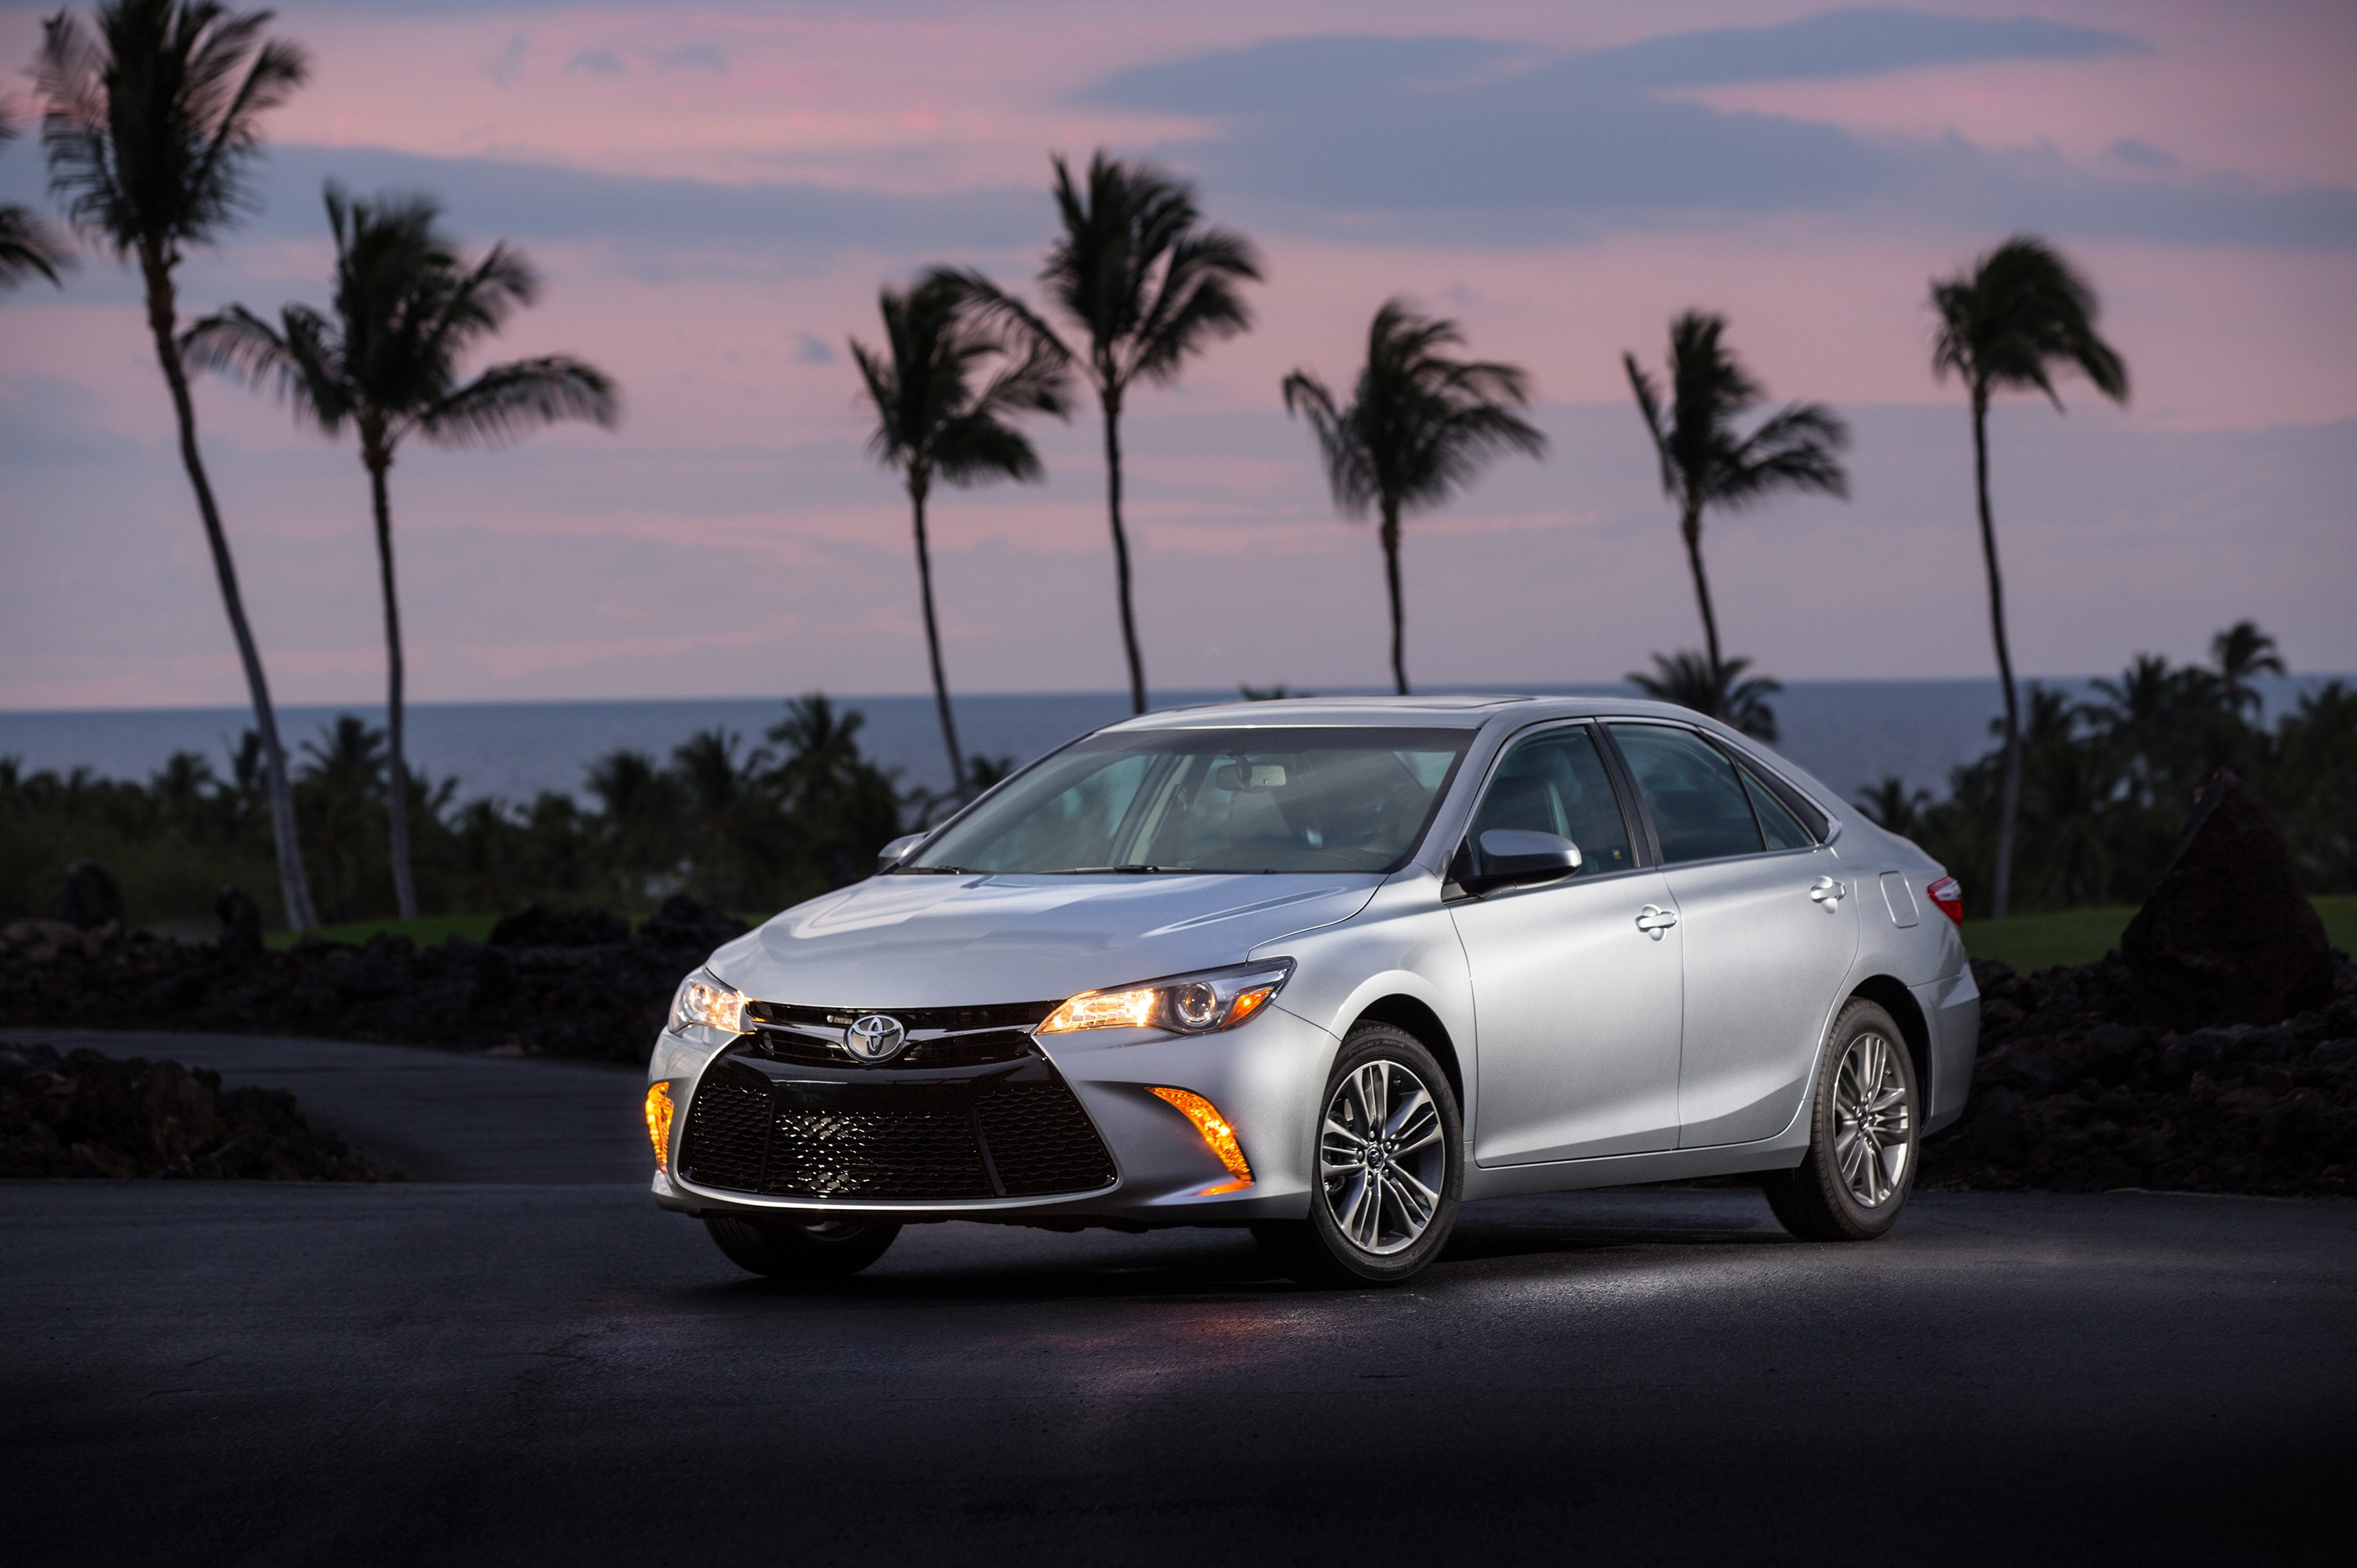 2018 Toyota Camry Design Partially Revealed By Next Gen Nascar Camry